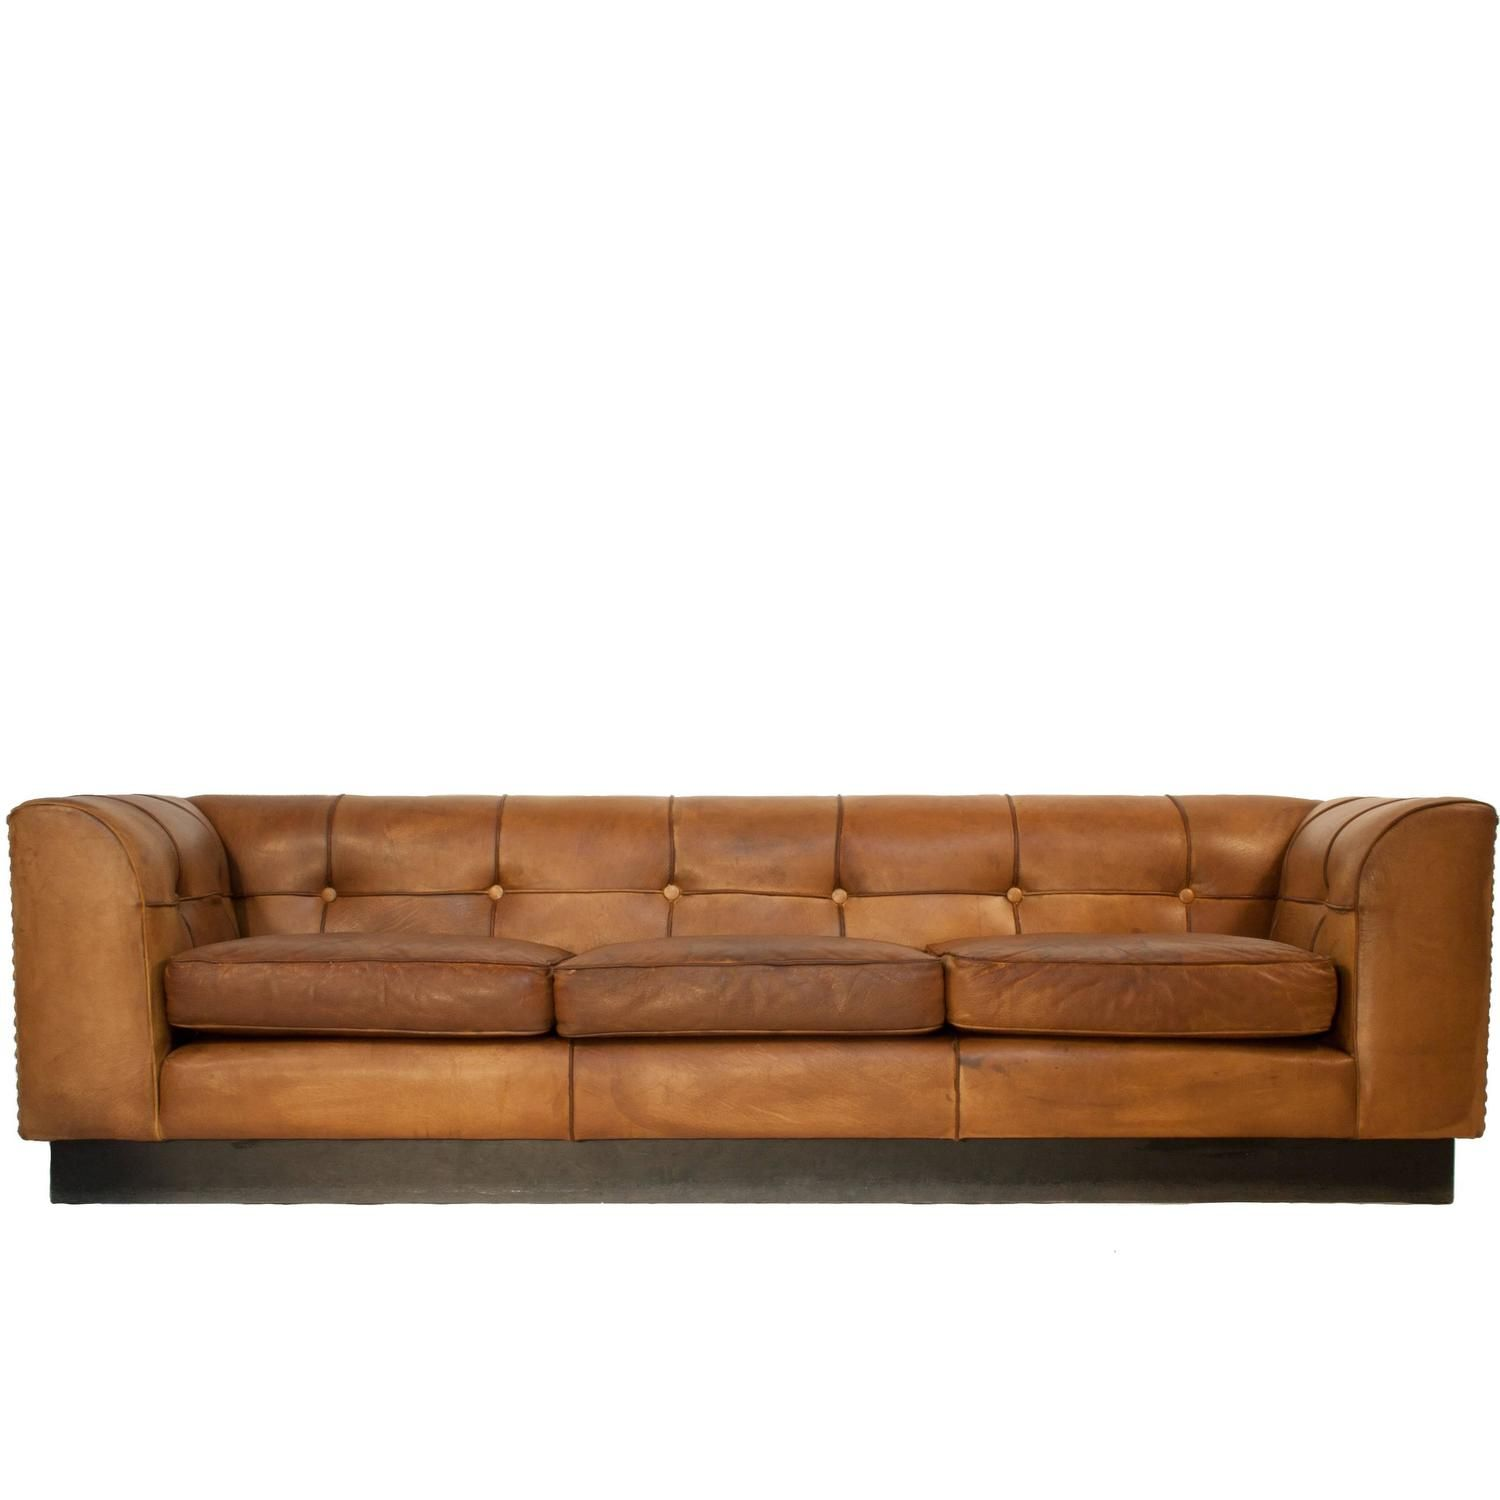 leather sofa by arne norell mid century pinterest leather rh pinterest com Unique Sectional Sofas unique leather sofas uk